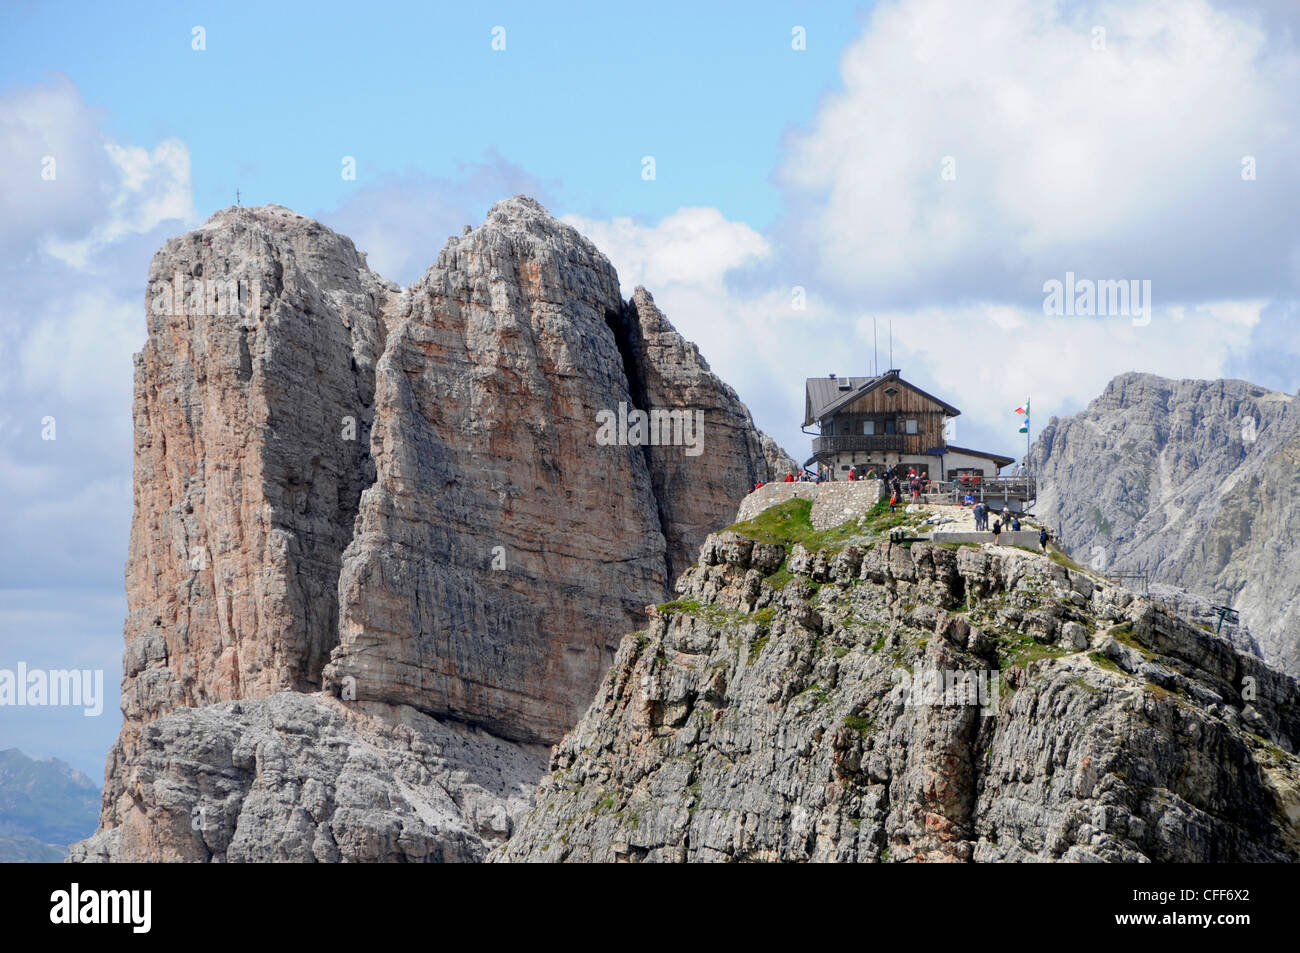 Alpine hut at Dolomiti ampezzane, Alto Adige, South Tyrol, Italy, Europe Stock Photo